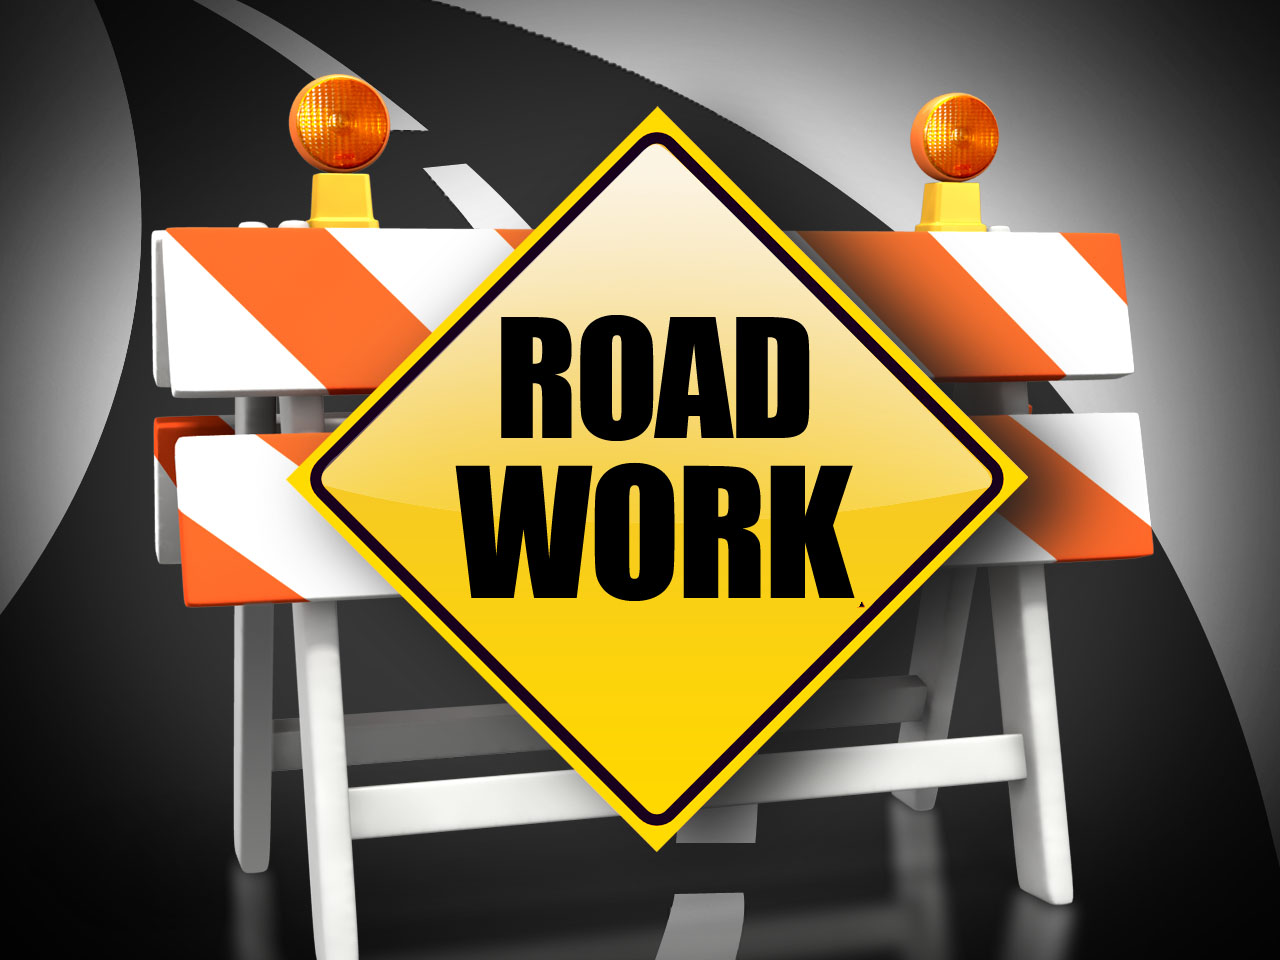 Section of Hawthorne Boulevard (State Route 107) to close in both directions for emergency pavement work